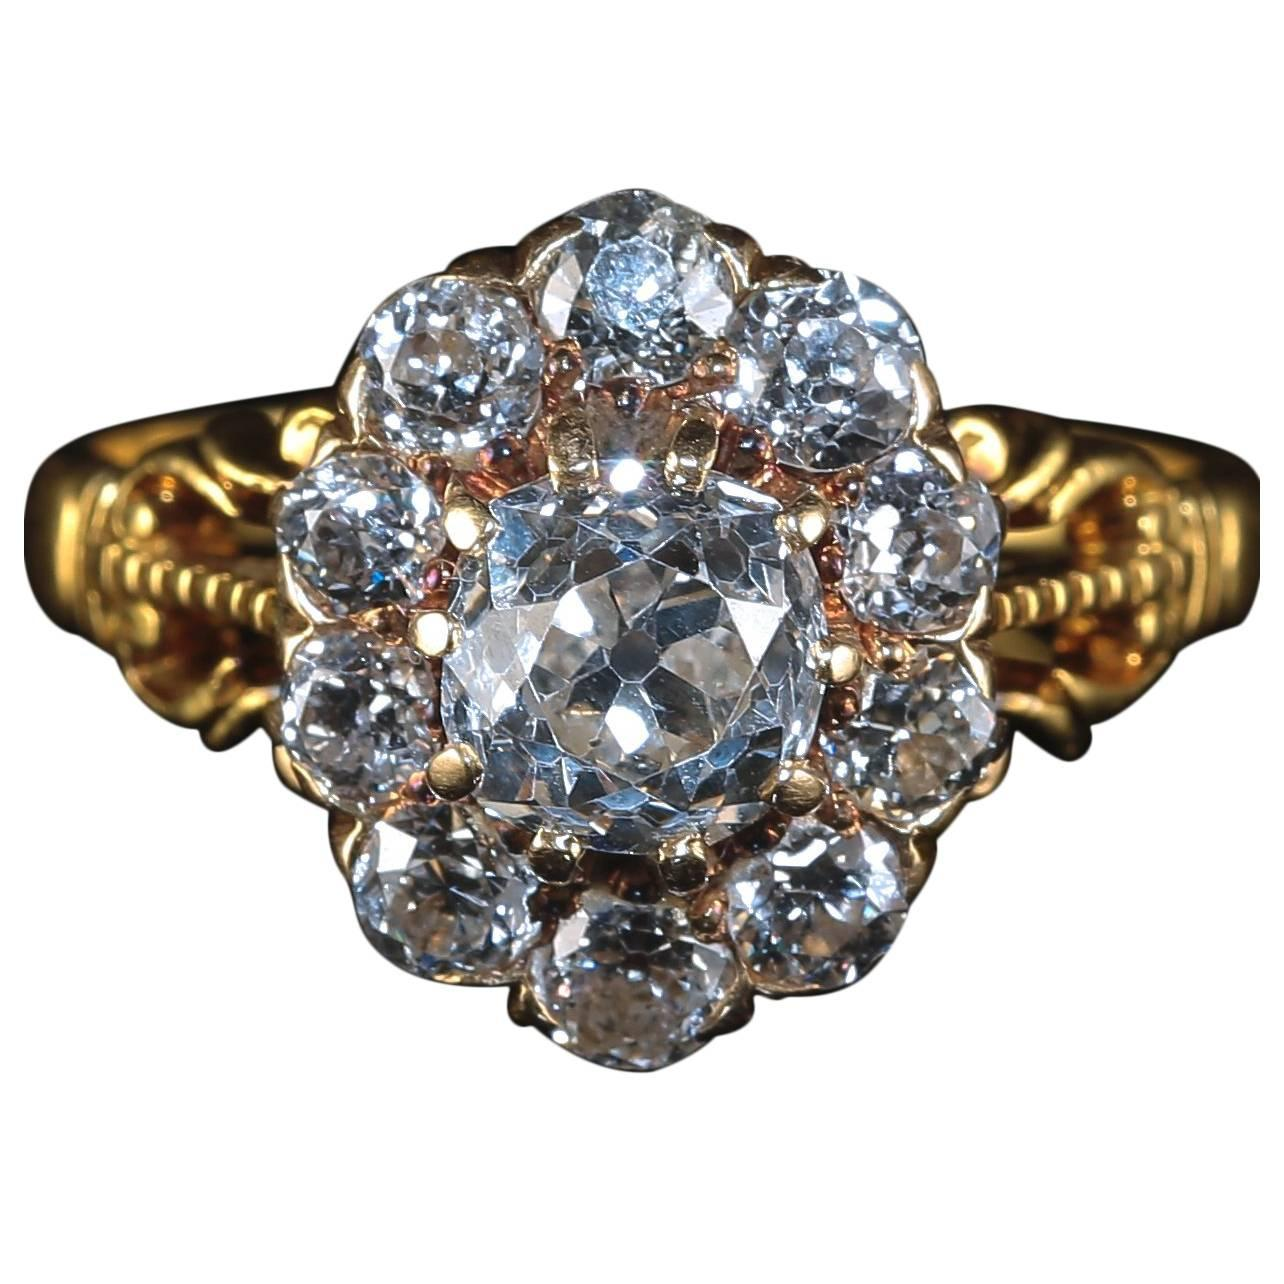 Antique Victorian Diamond Ring 2 Carat Diamond Cluster Ring, Circa 1880 For  Sale At 1stdibs